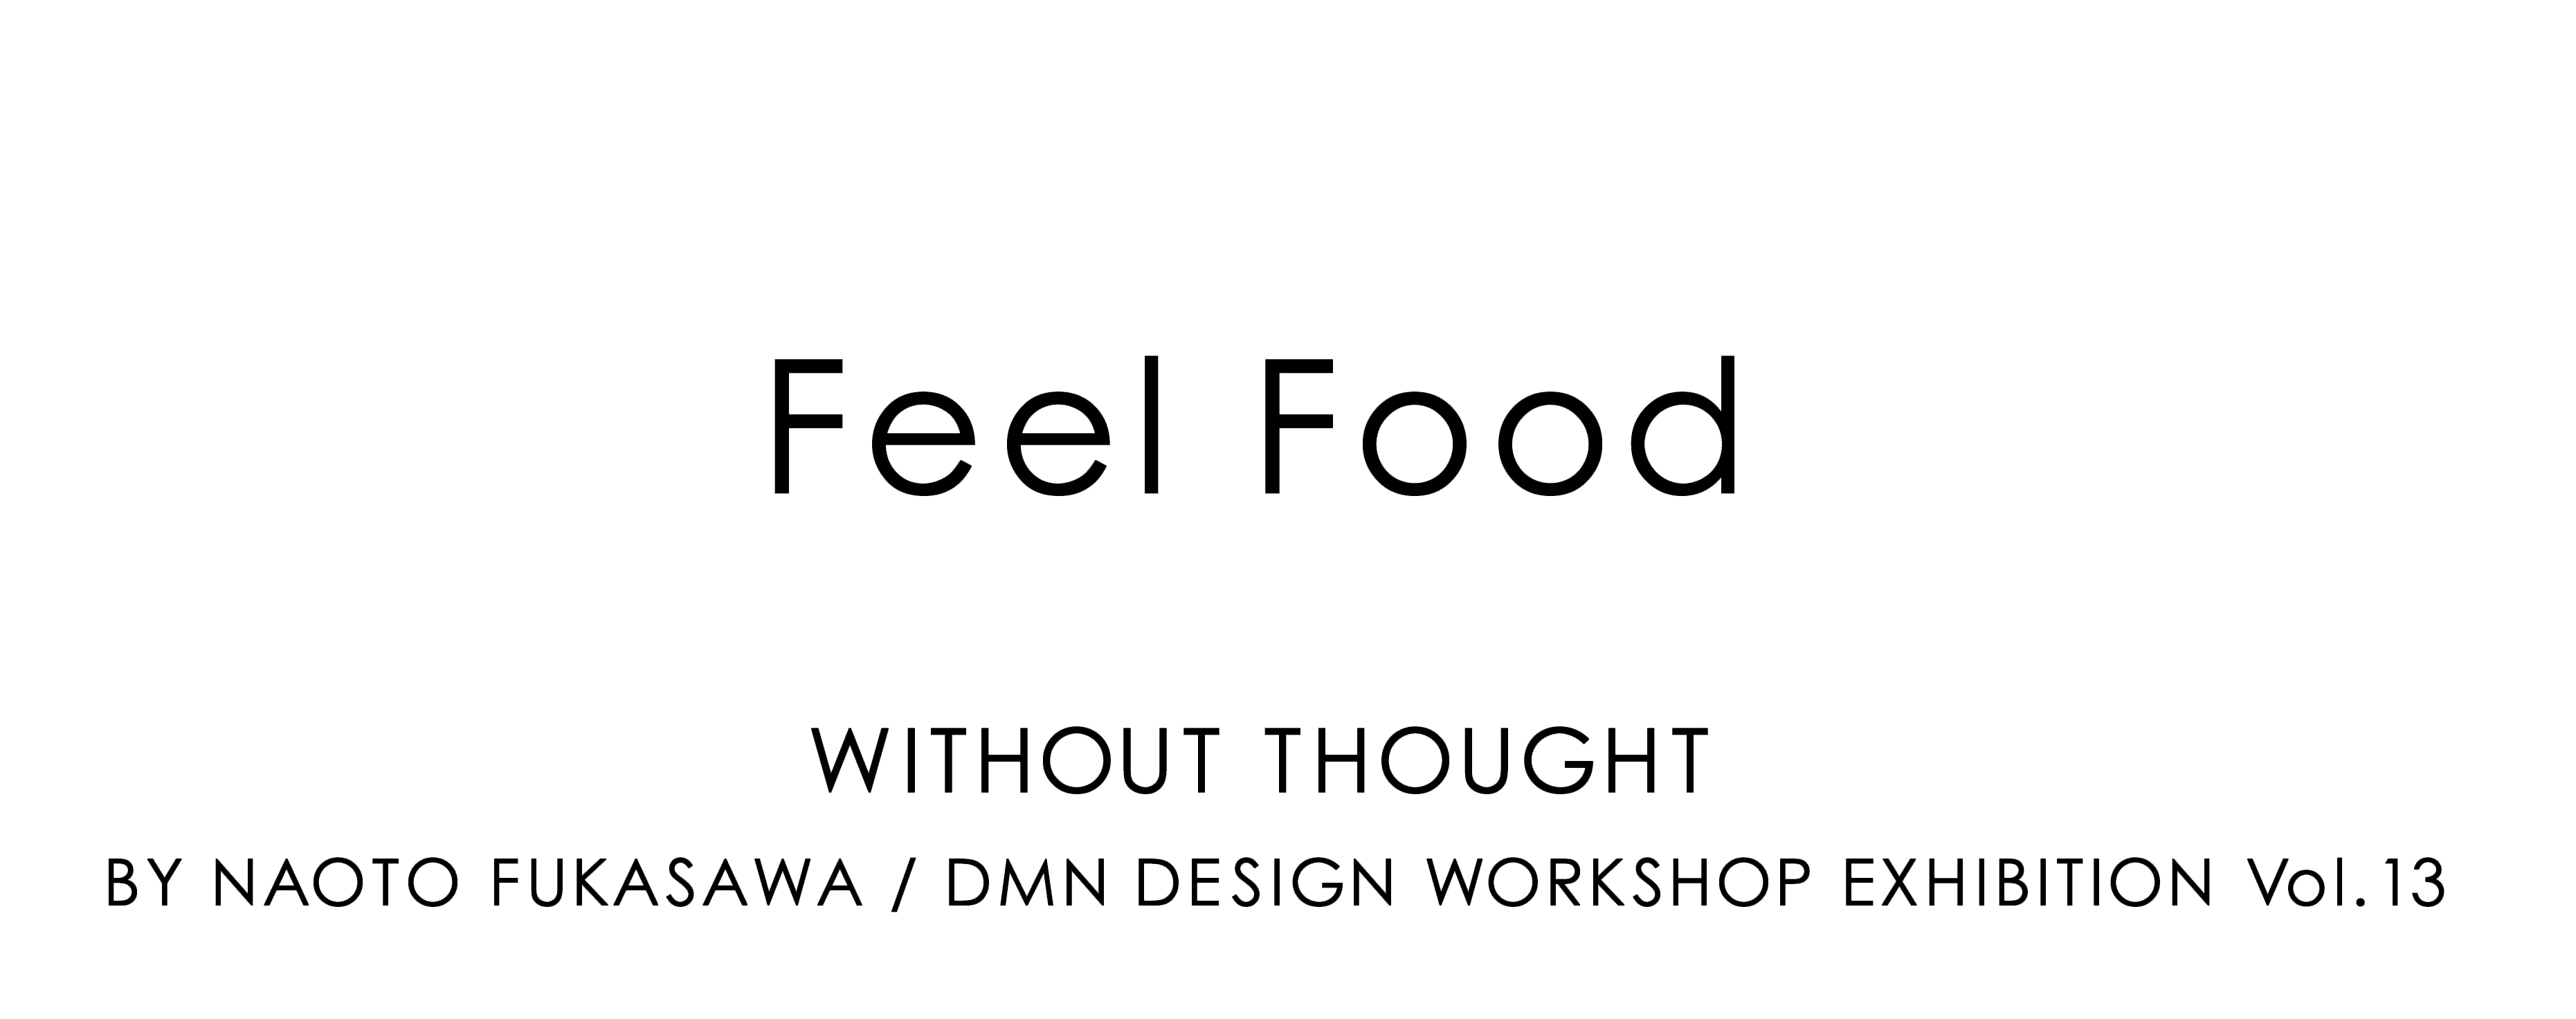 WITHOUT THOUGHT BY NAOTO FUKASAWA DMN DESIGN WORKSHOP EXHIBITION VOL.13 |Feel Food